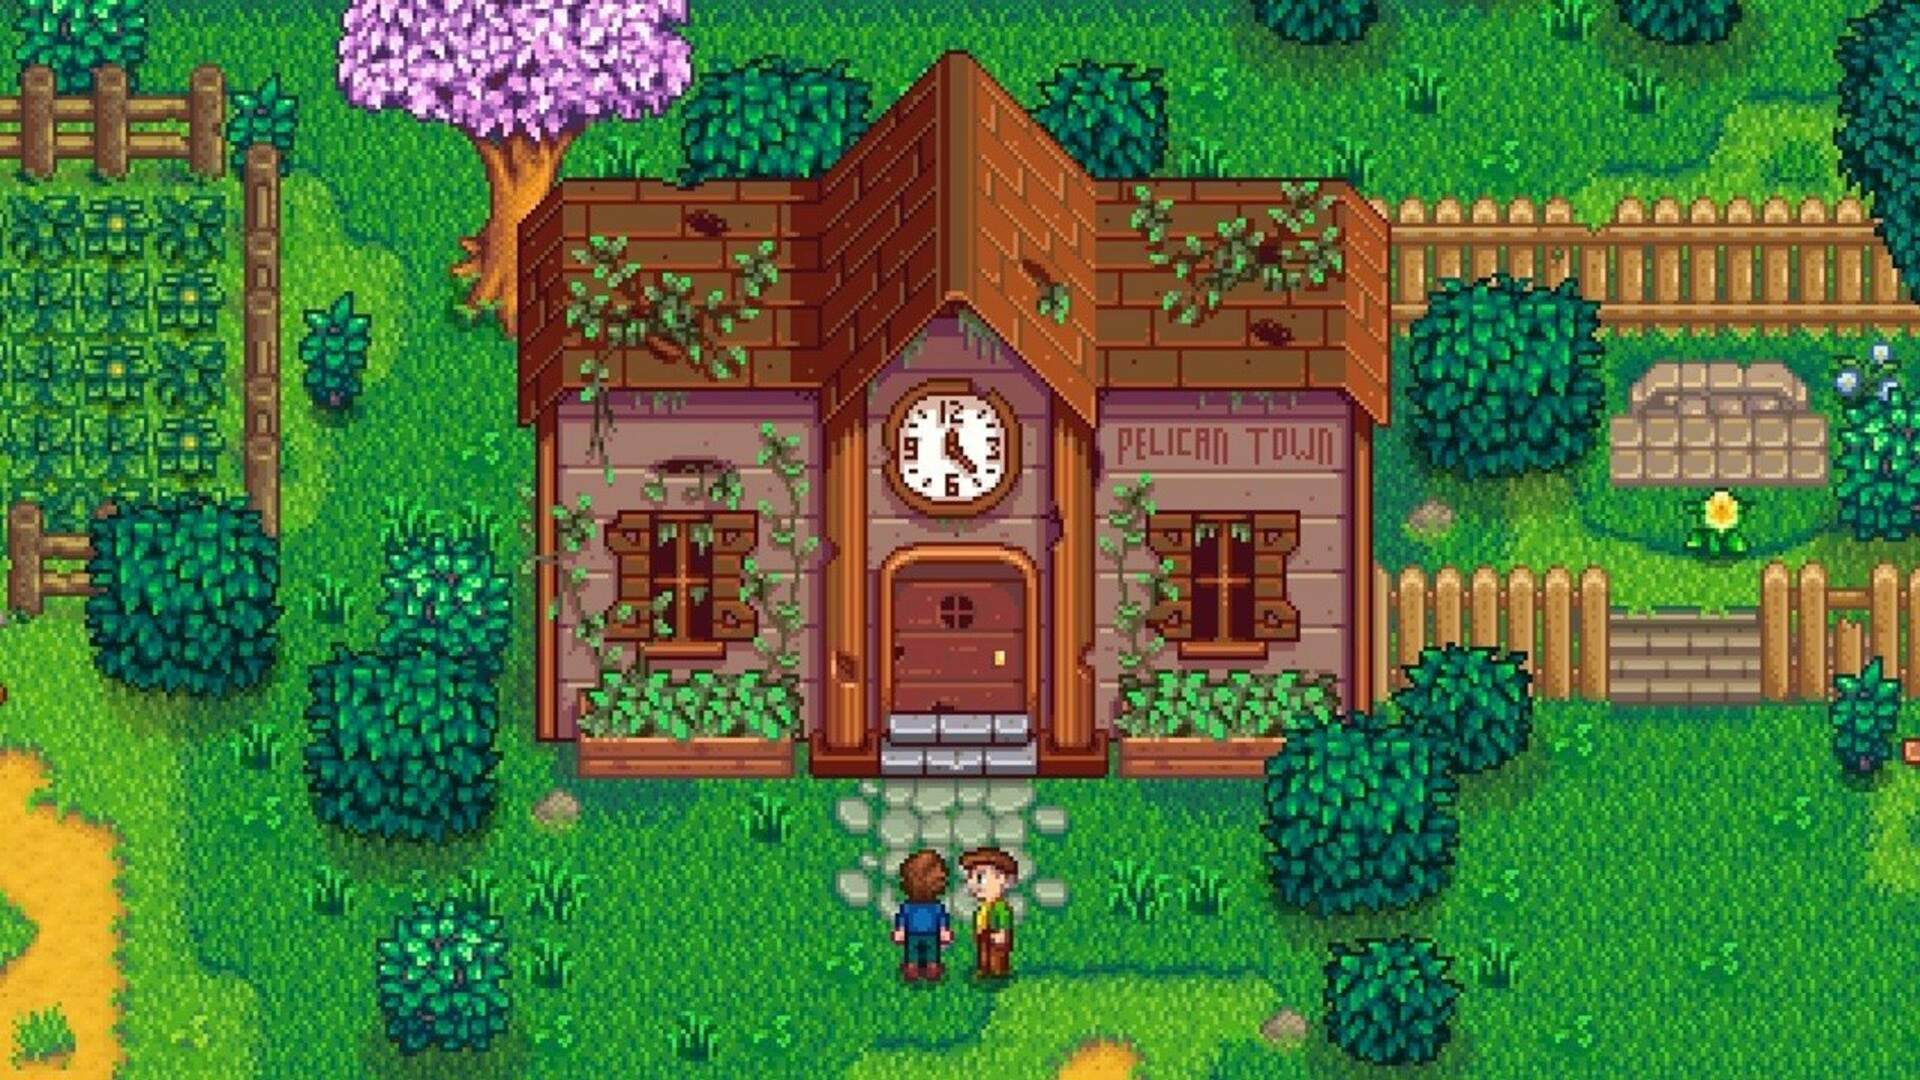 Stardew Valley: How to Get the Greenhouse and Grow Plants in Winter